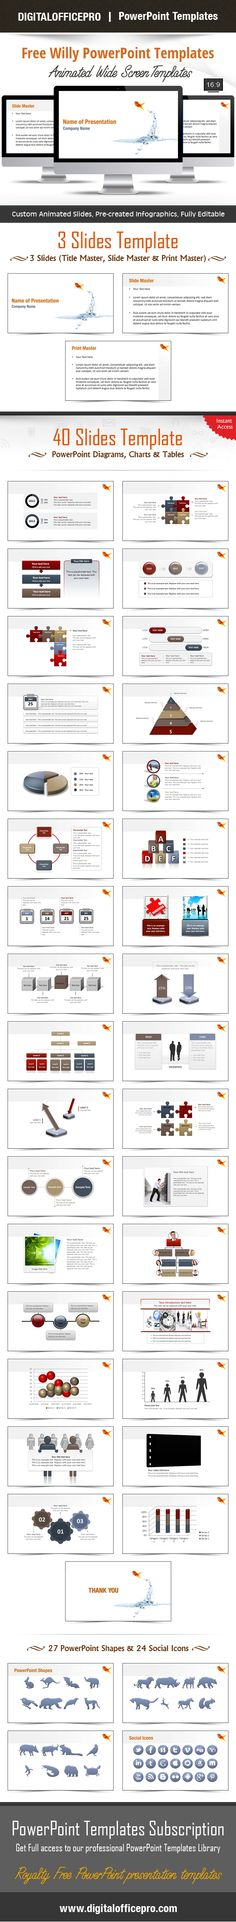 Communication Network PowerPoint Template Backgrounds